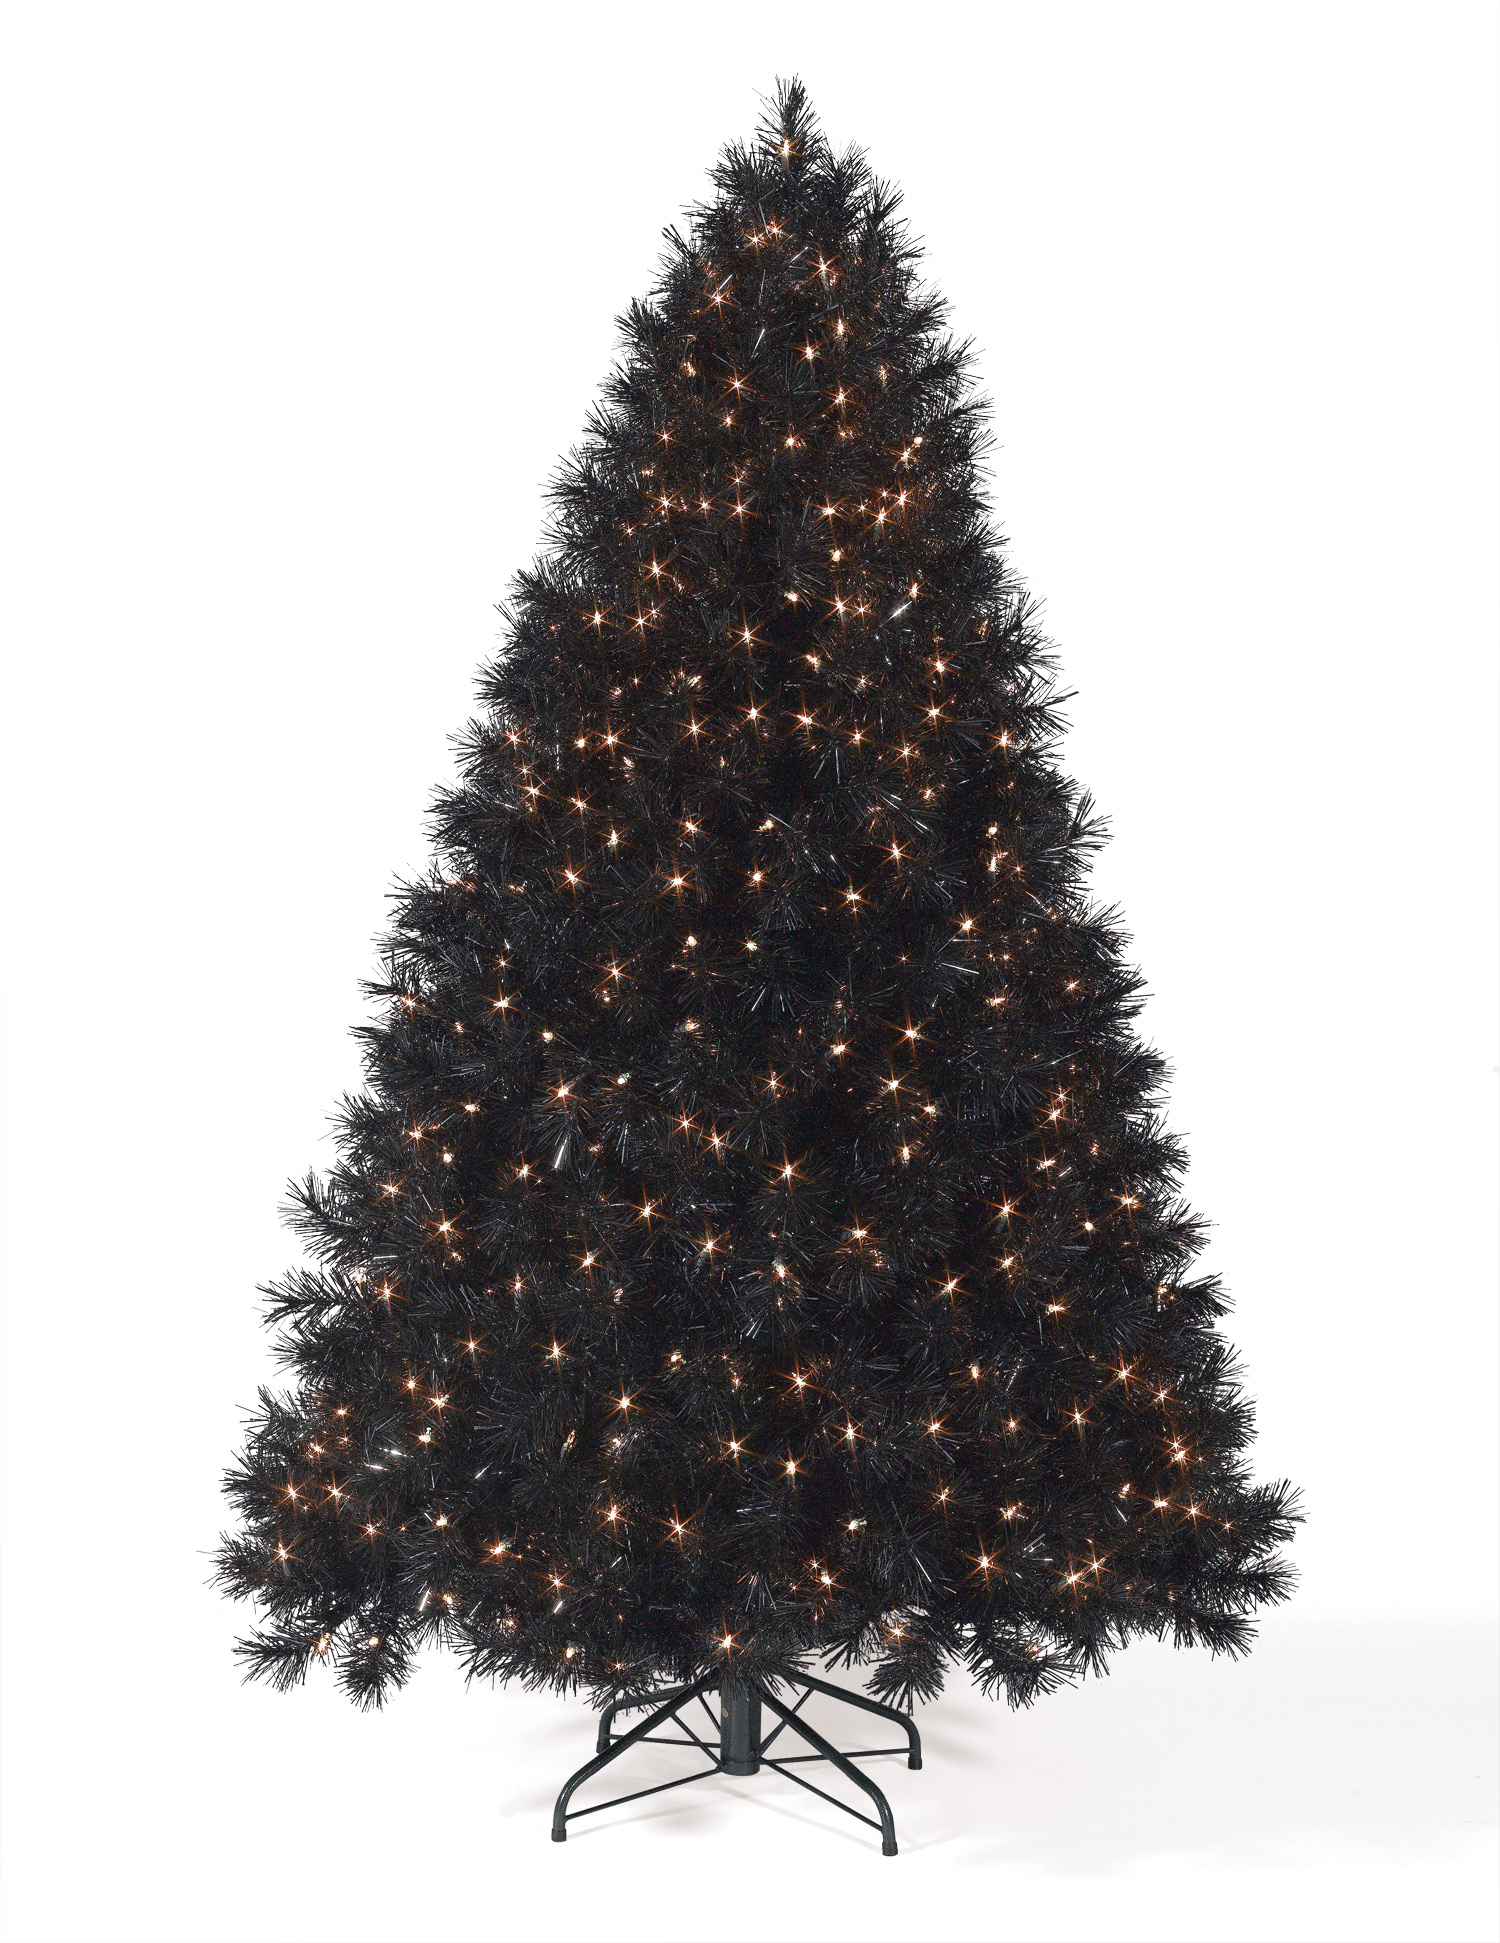 5 foot classy black clear christmas tree - 5 Foot Christmas Tree